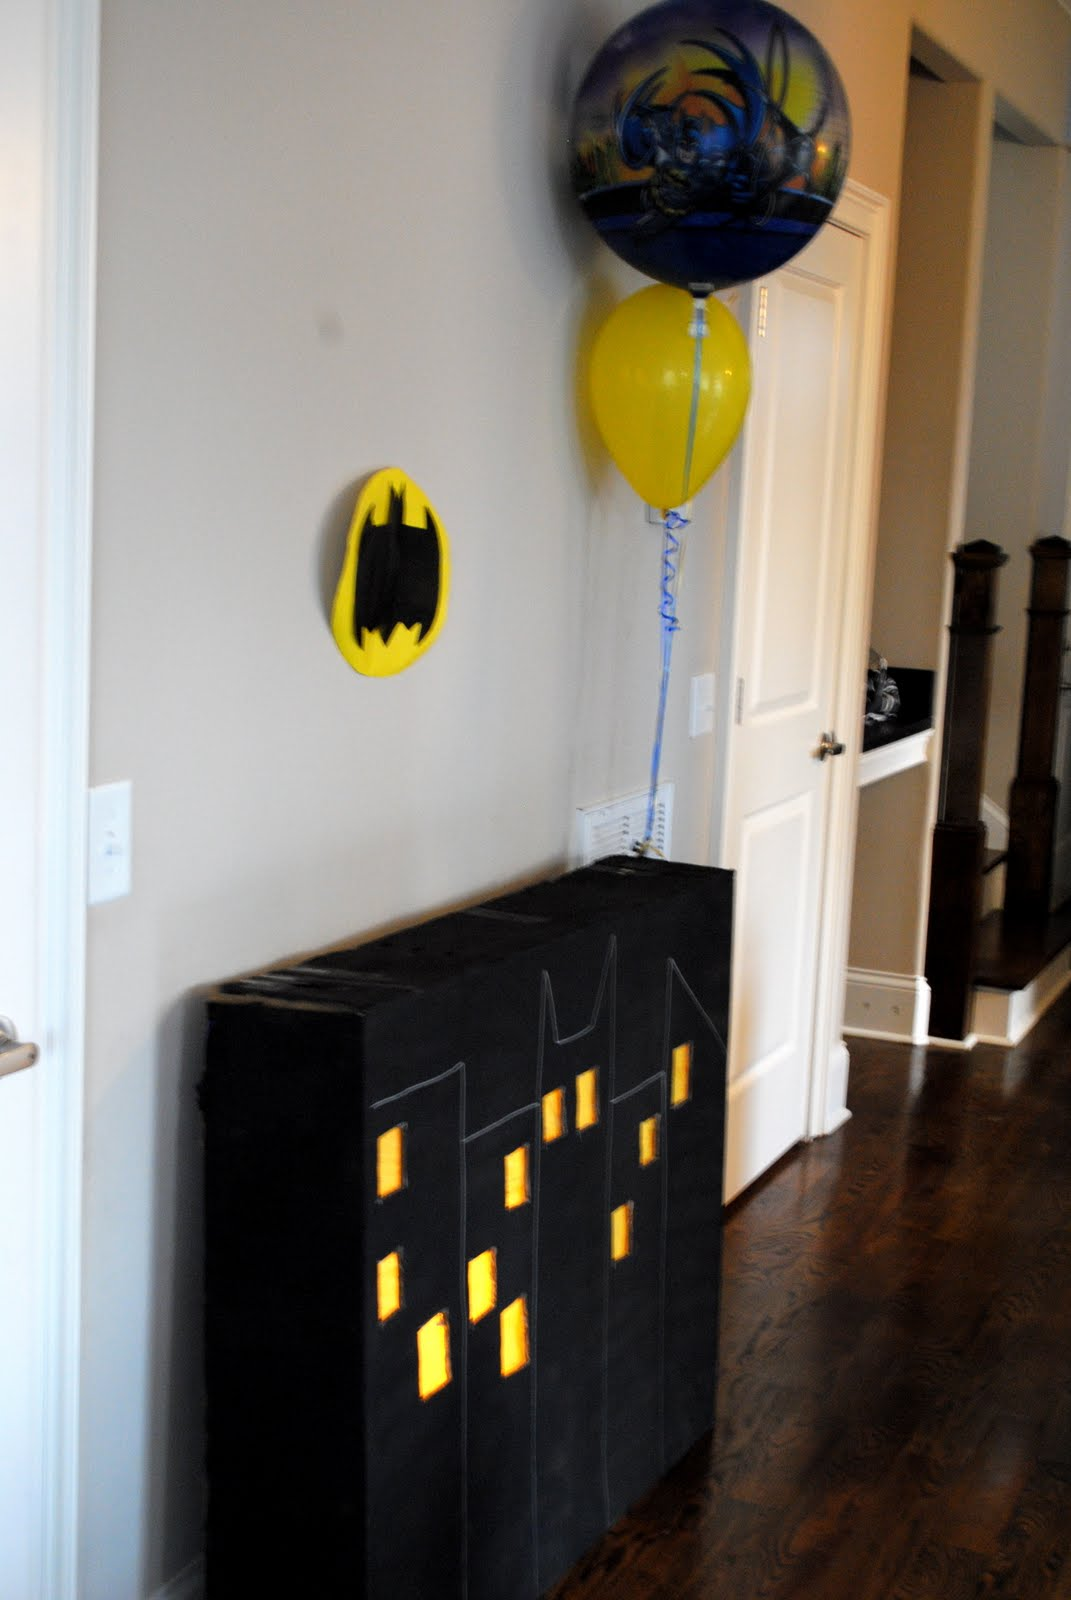 & Smile Laugh and Learn: batman party theme